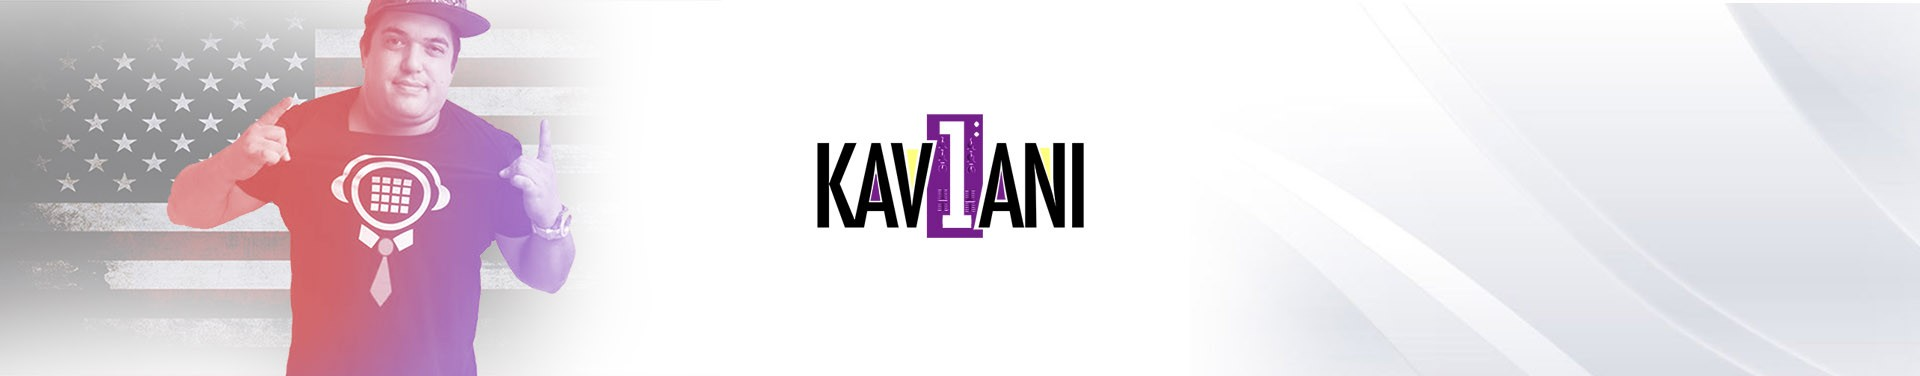 PURPLE_KAV1ANI_2015_mixes_online_dope_djs_best_east_coast